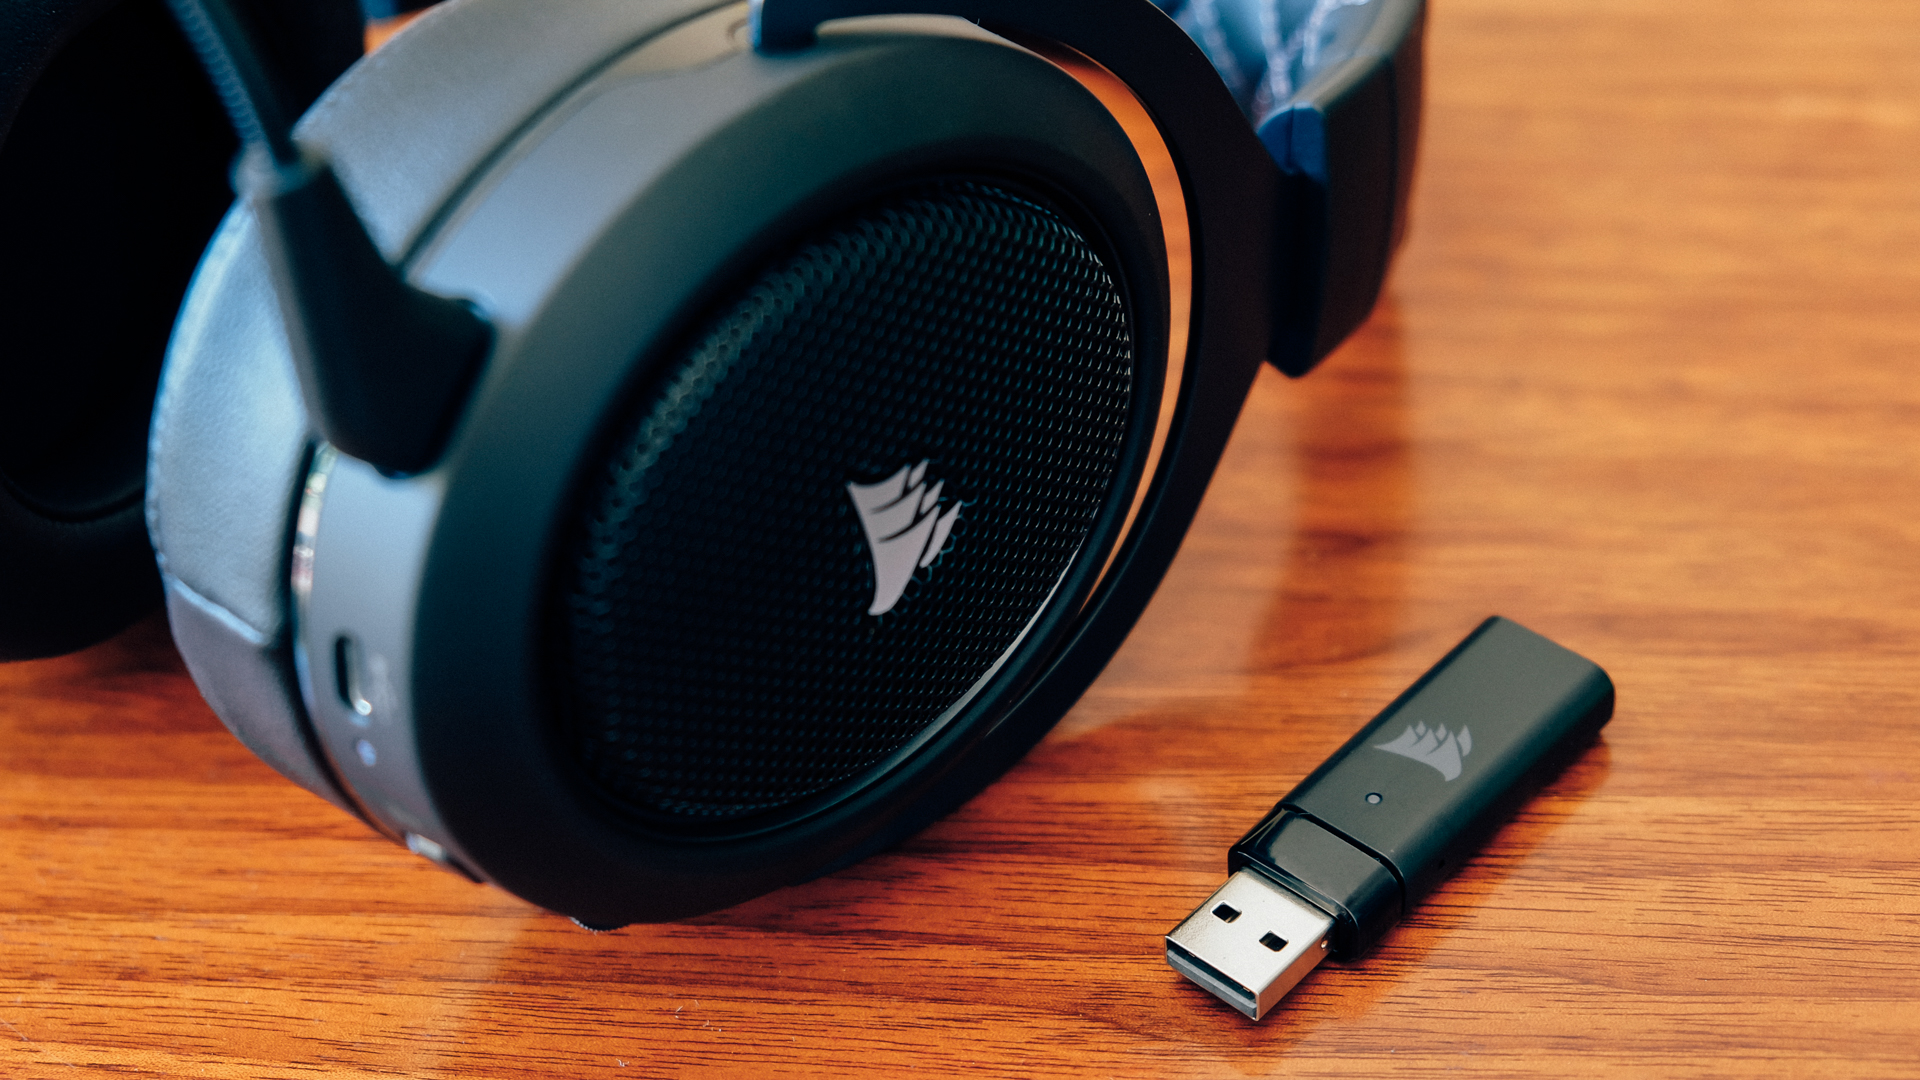 Corsair HS70 Wireless Gaming Headset - myOurReview